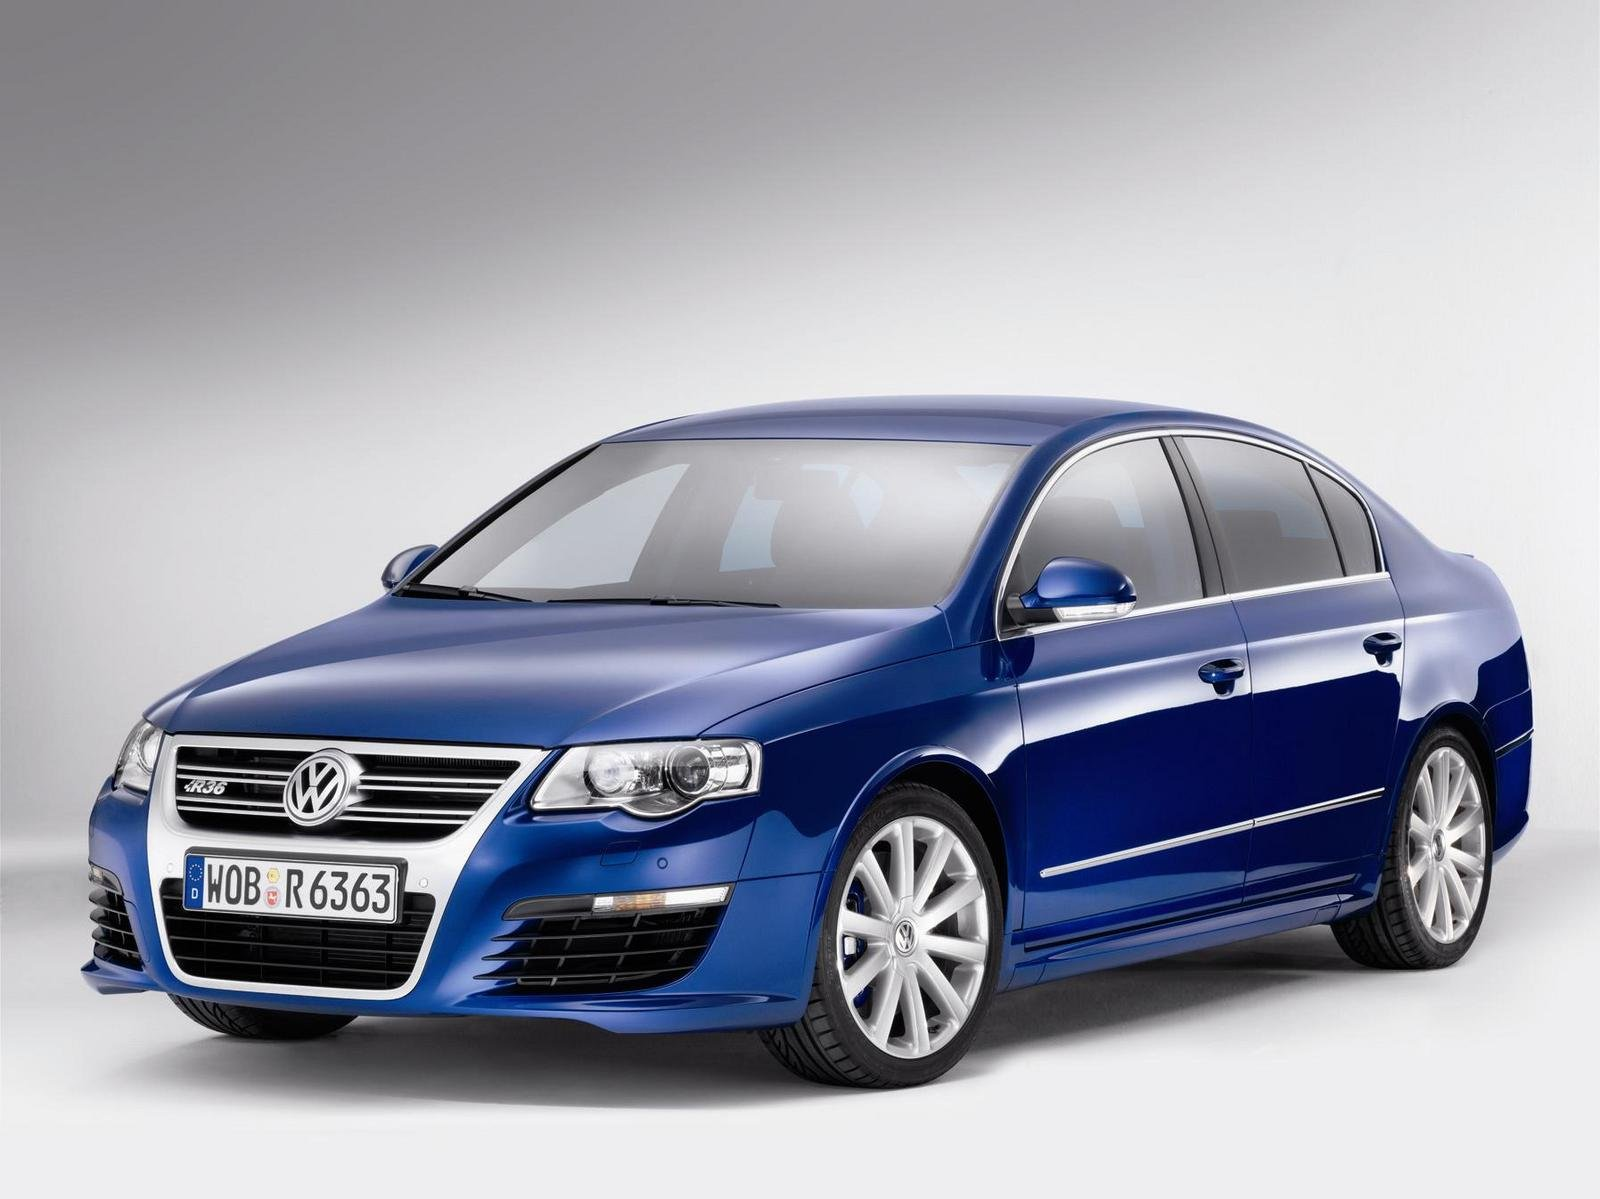 2007 volkswagen passat r36 review top speed. Black Bedroom Furniture Sets. Home Design Ideas